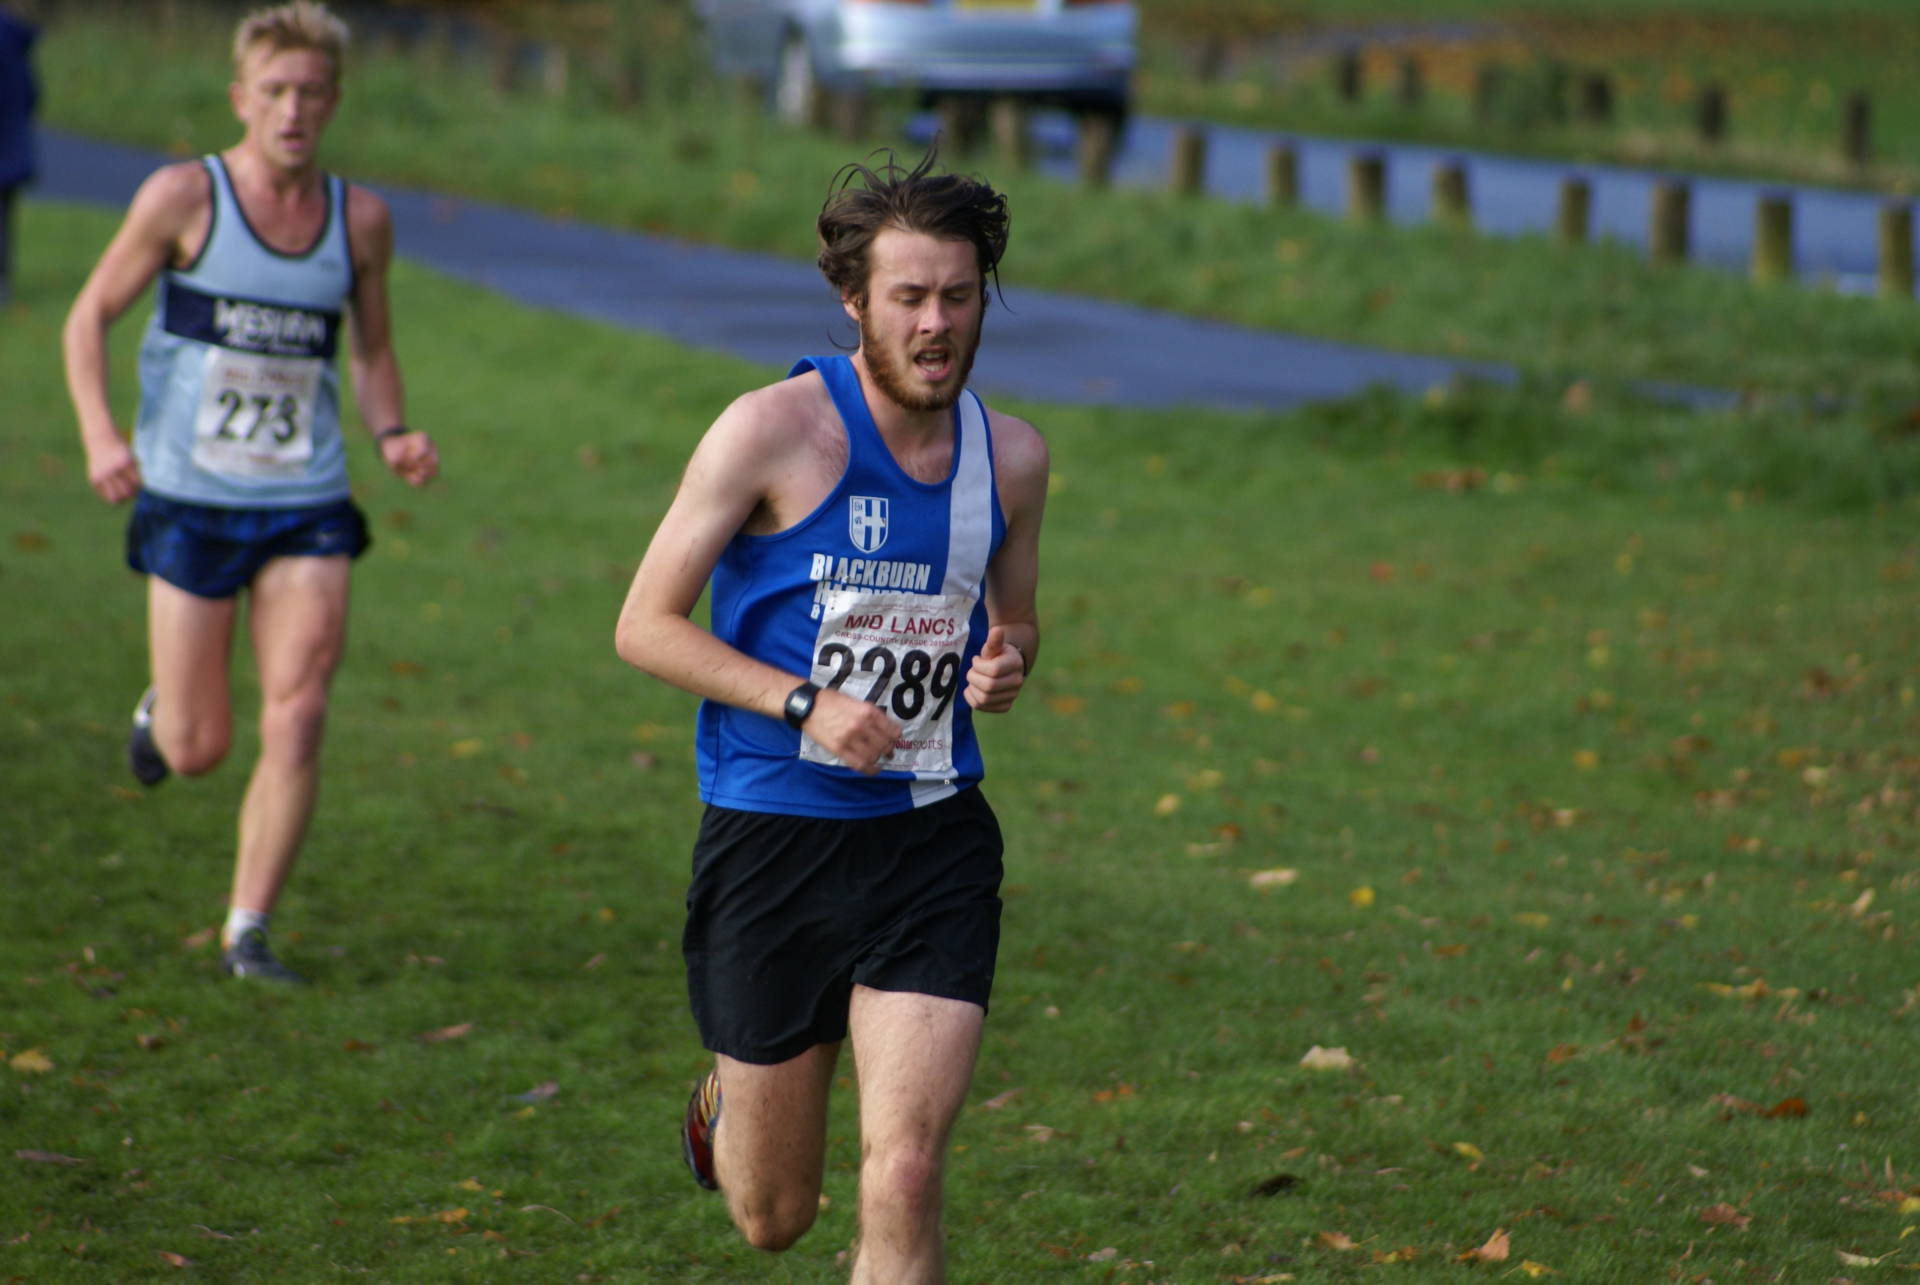 Karl leads the Harriers to Mens Senior Team Win at Burnley and fine runs from the Clubs young athletes